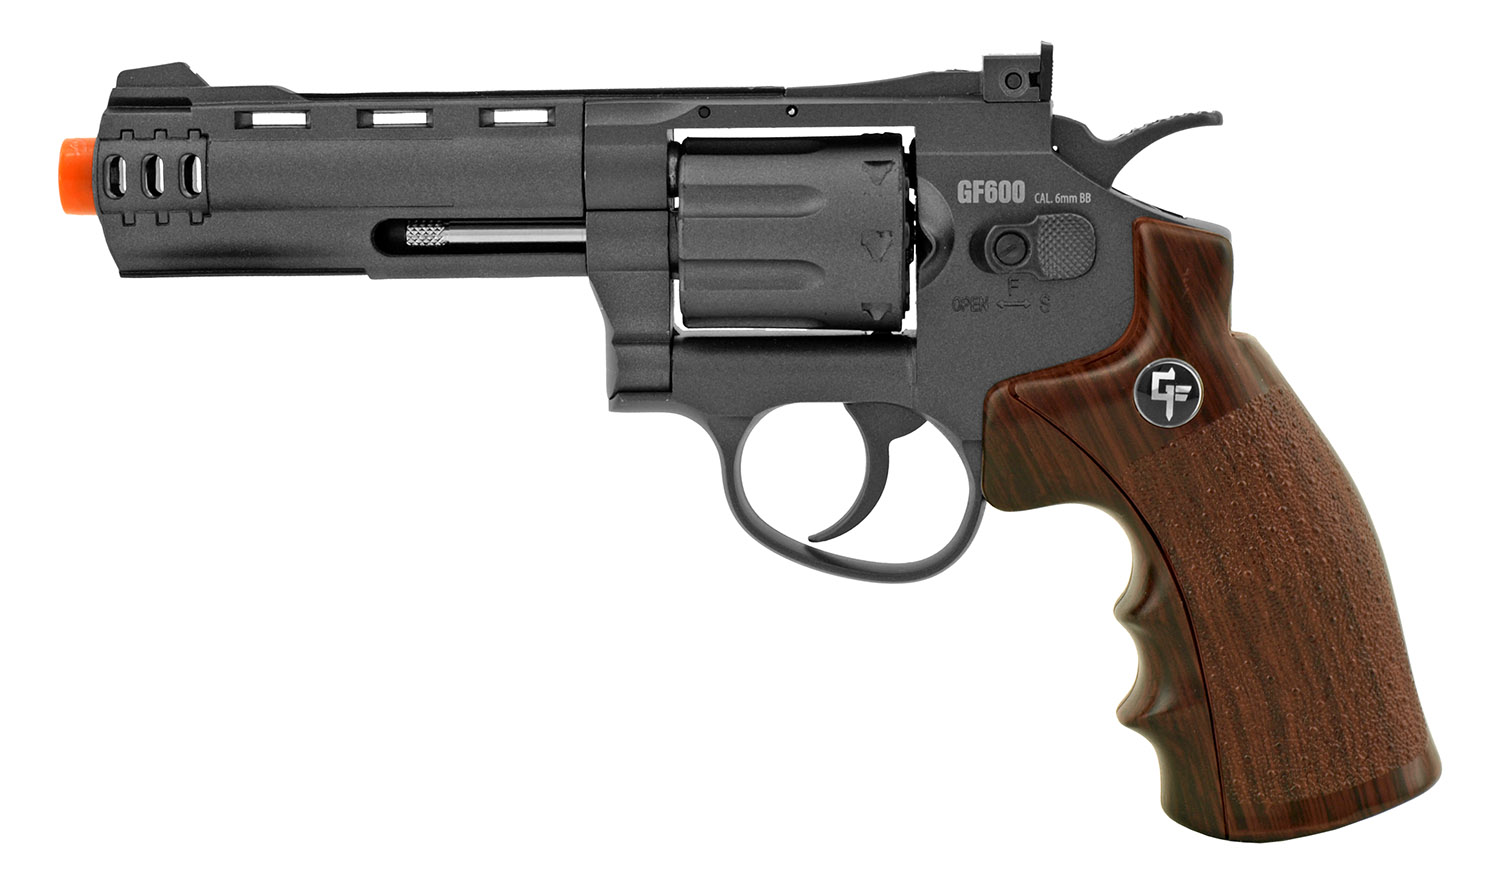 Z357 Ztorm CO2 Airsoft Revolver - Refurbished